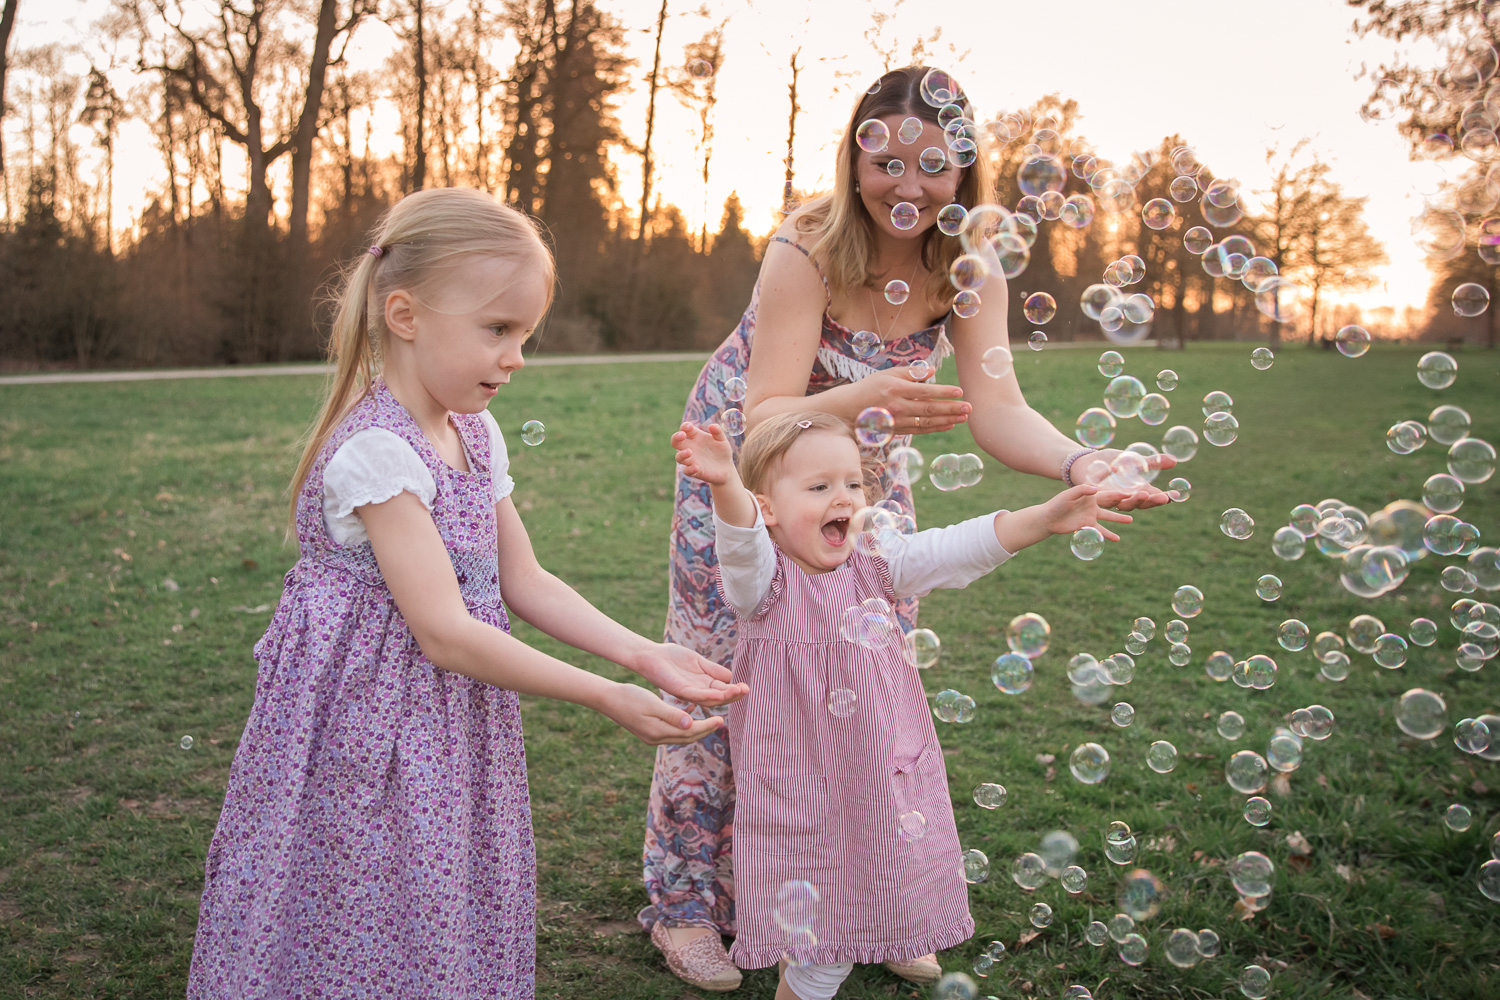 Sandra Ruth Photography Mom and Girls Playing With Bubbles.jpg